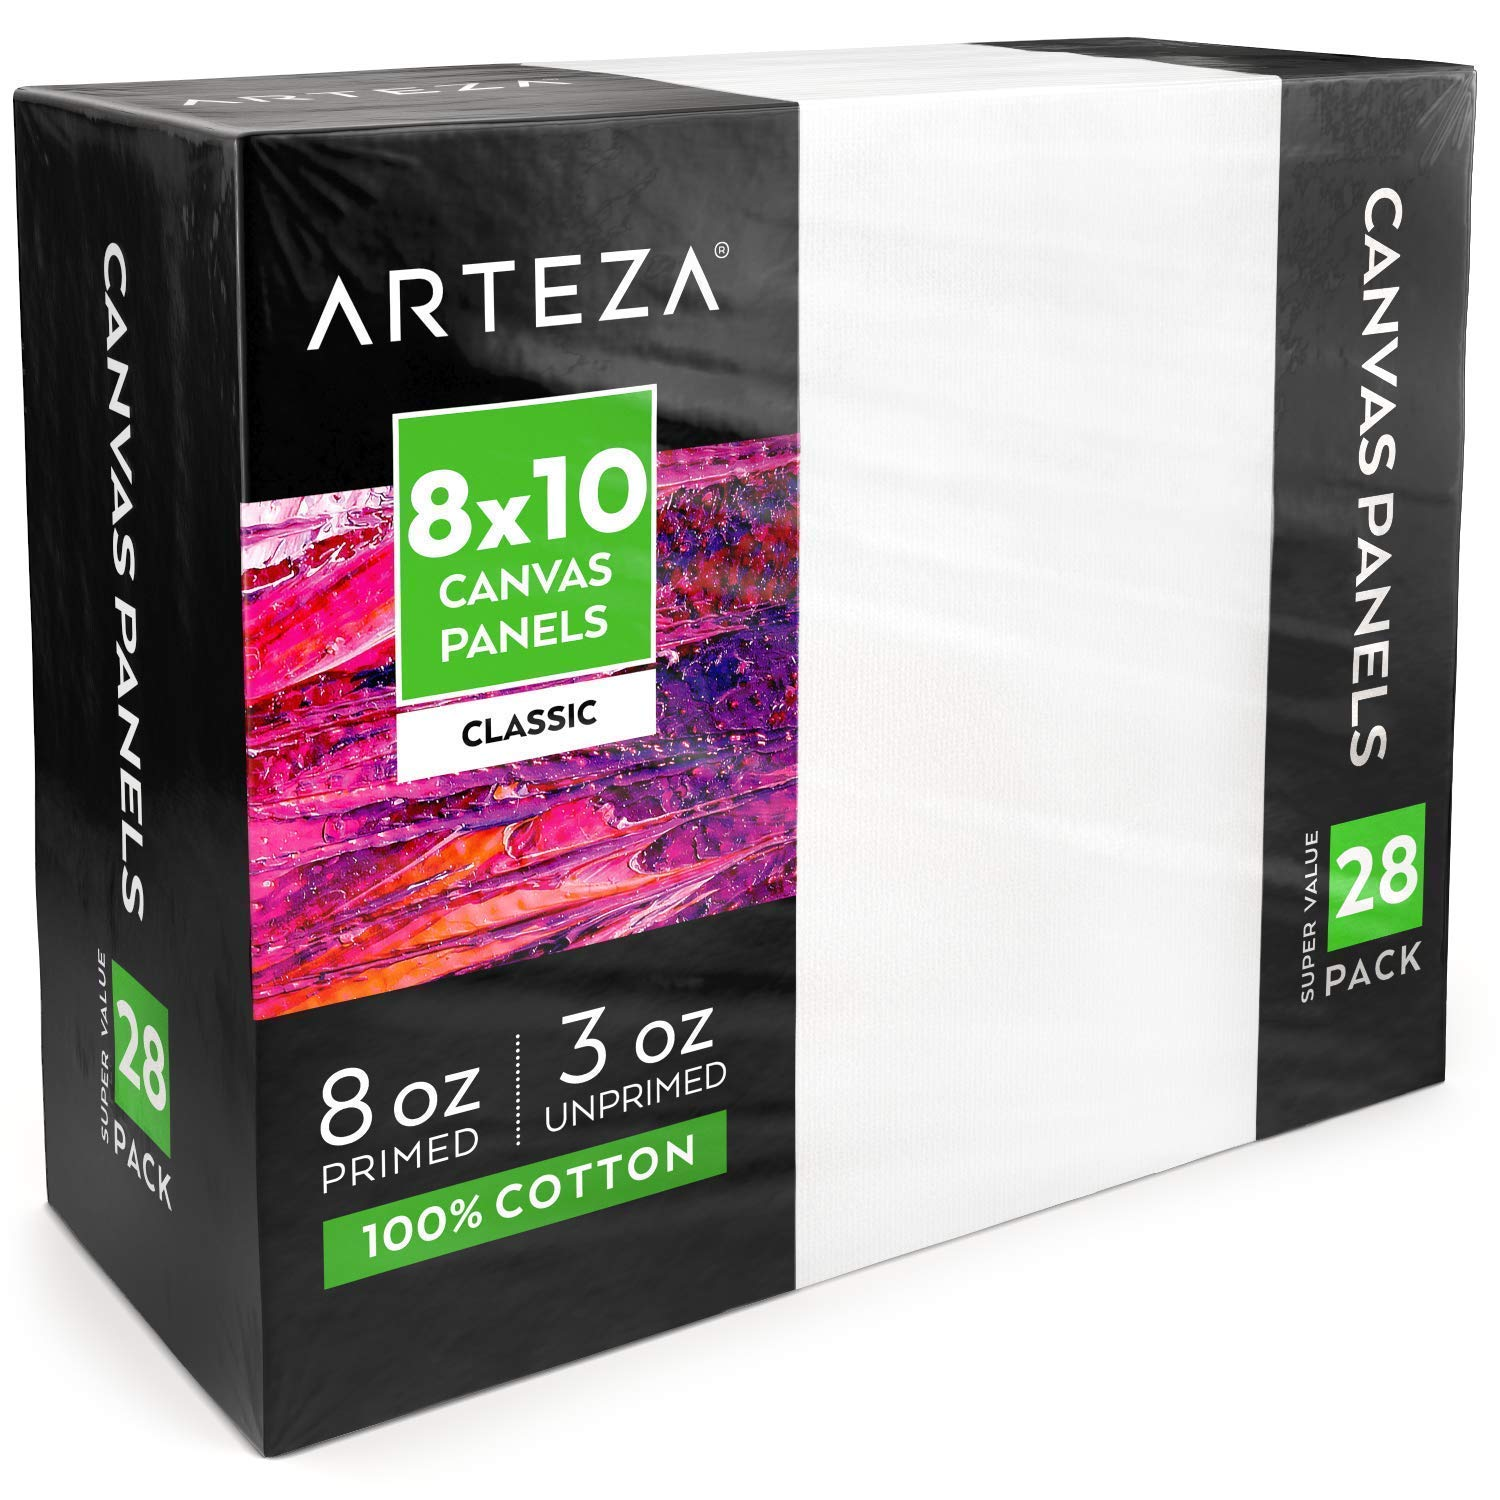 Arteza 8x10'' White Blank Canvas Panels Boards, Bulk Pack of 28, Primed, 100% Cotton for Acrylic Painting, Oil Paint & Wet Art Media, Canvases for Professional Artist, Hobby Painters & Beginners by ARTEZA